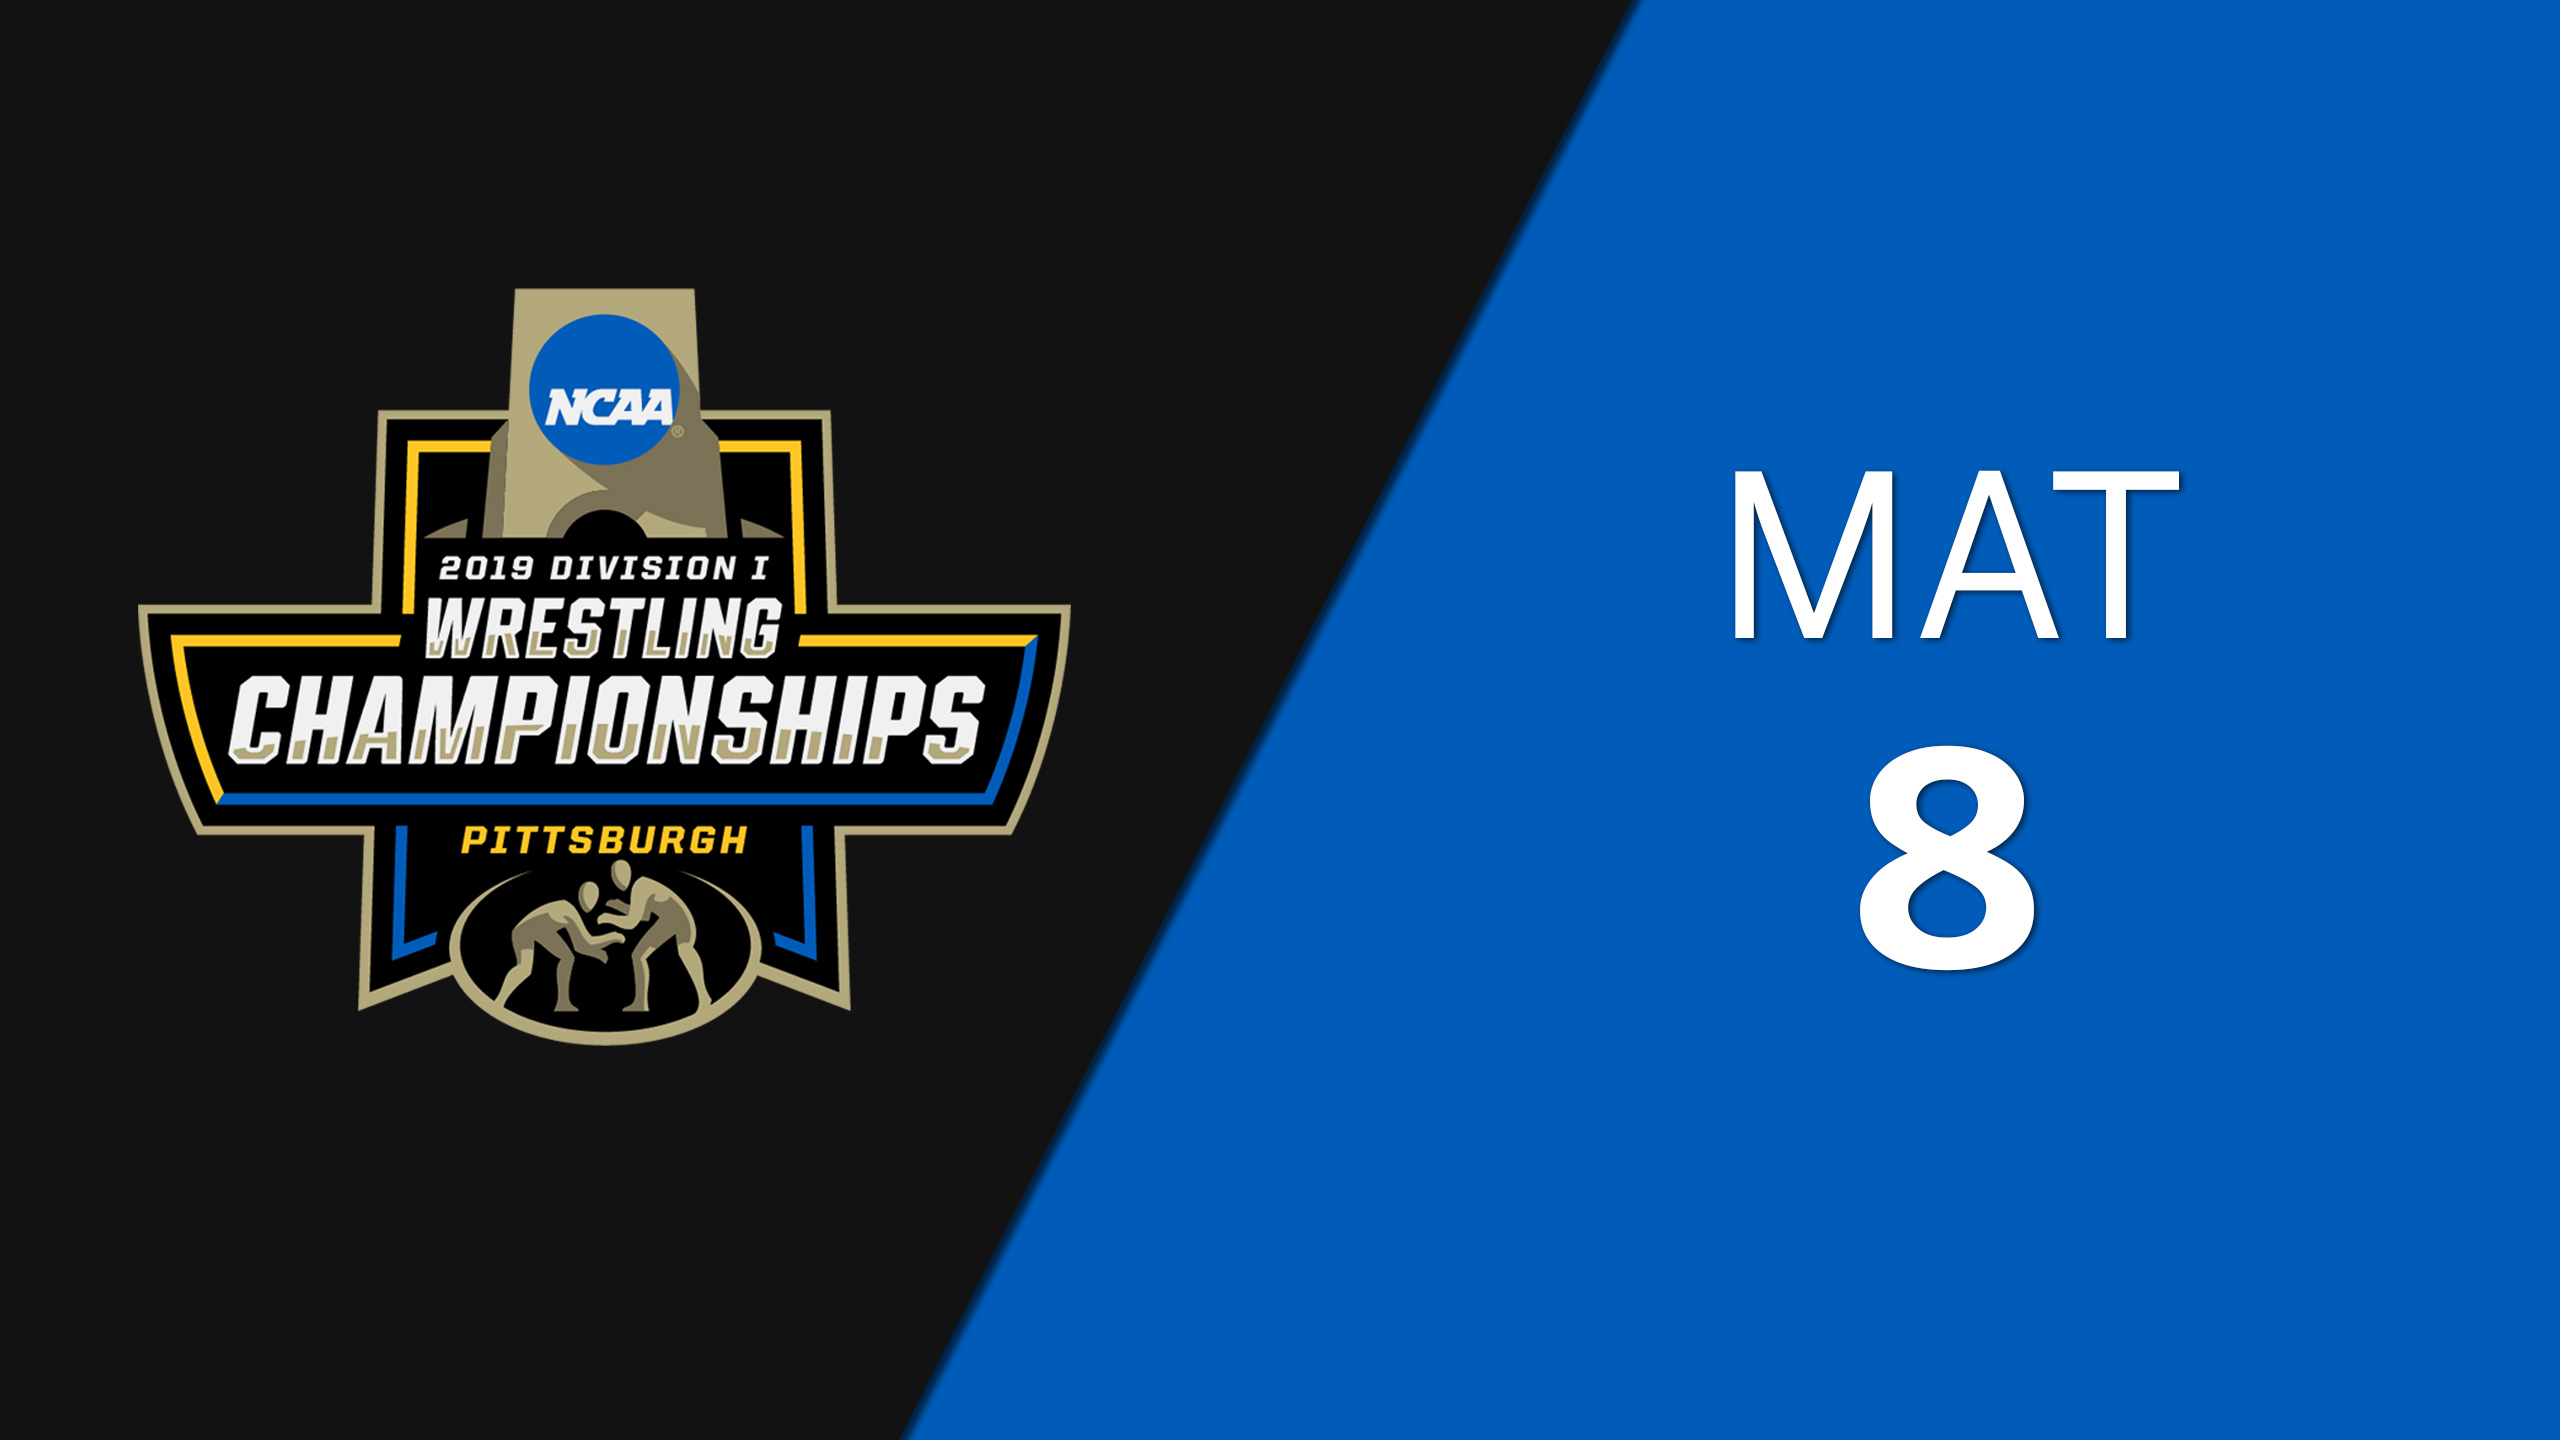 NCAA Wrestling Championship (Mat 8, First Round)